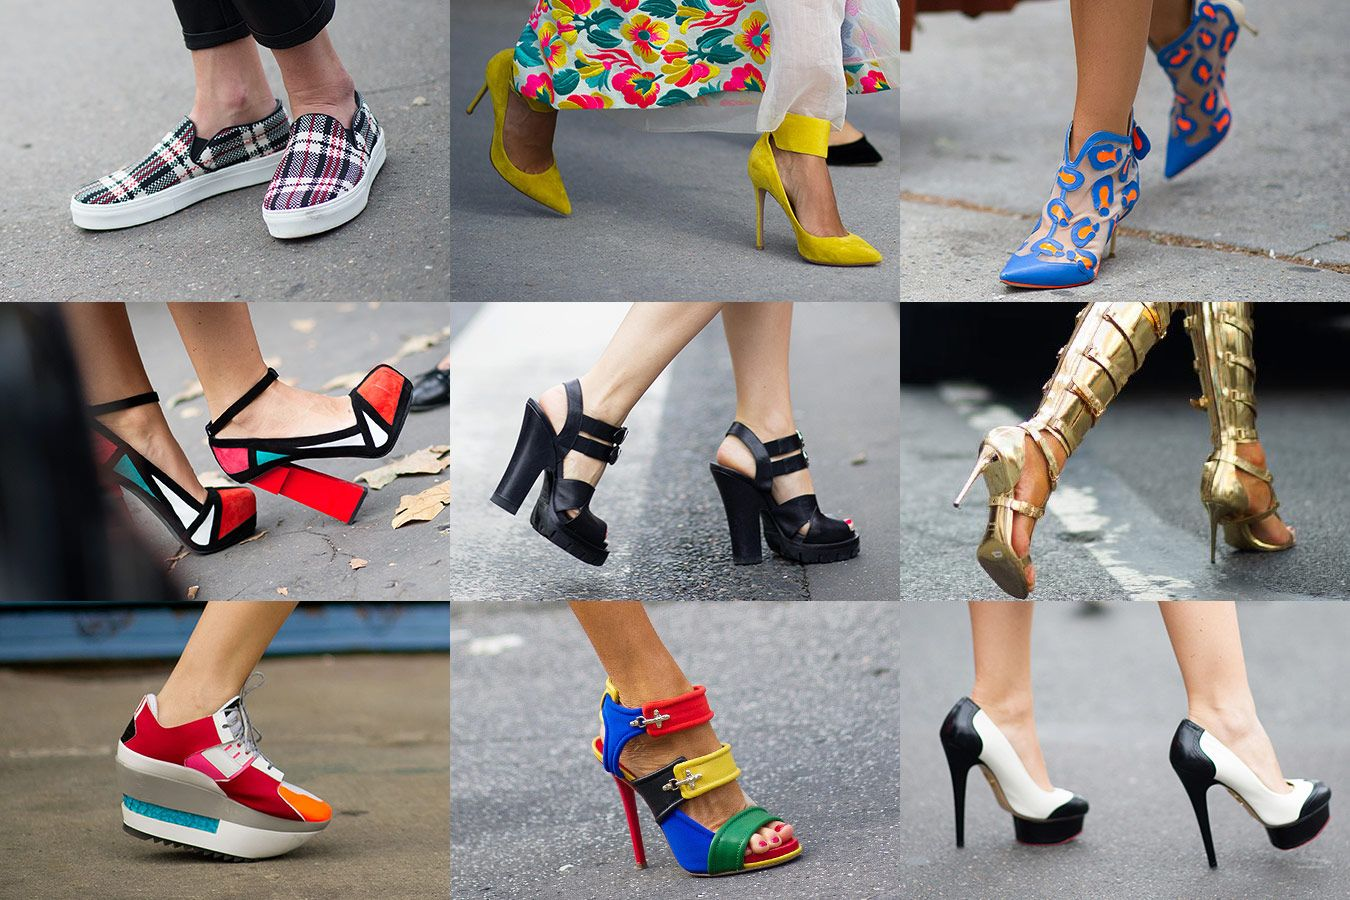 uk ladies fashion blog 4 hottest shoe trends of 2014 for women